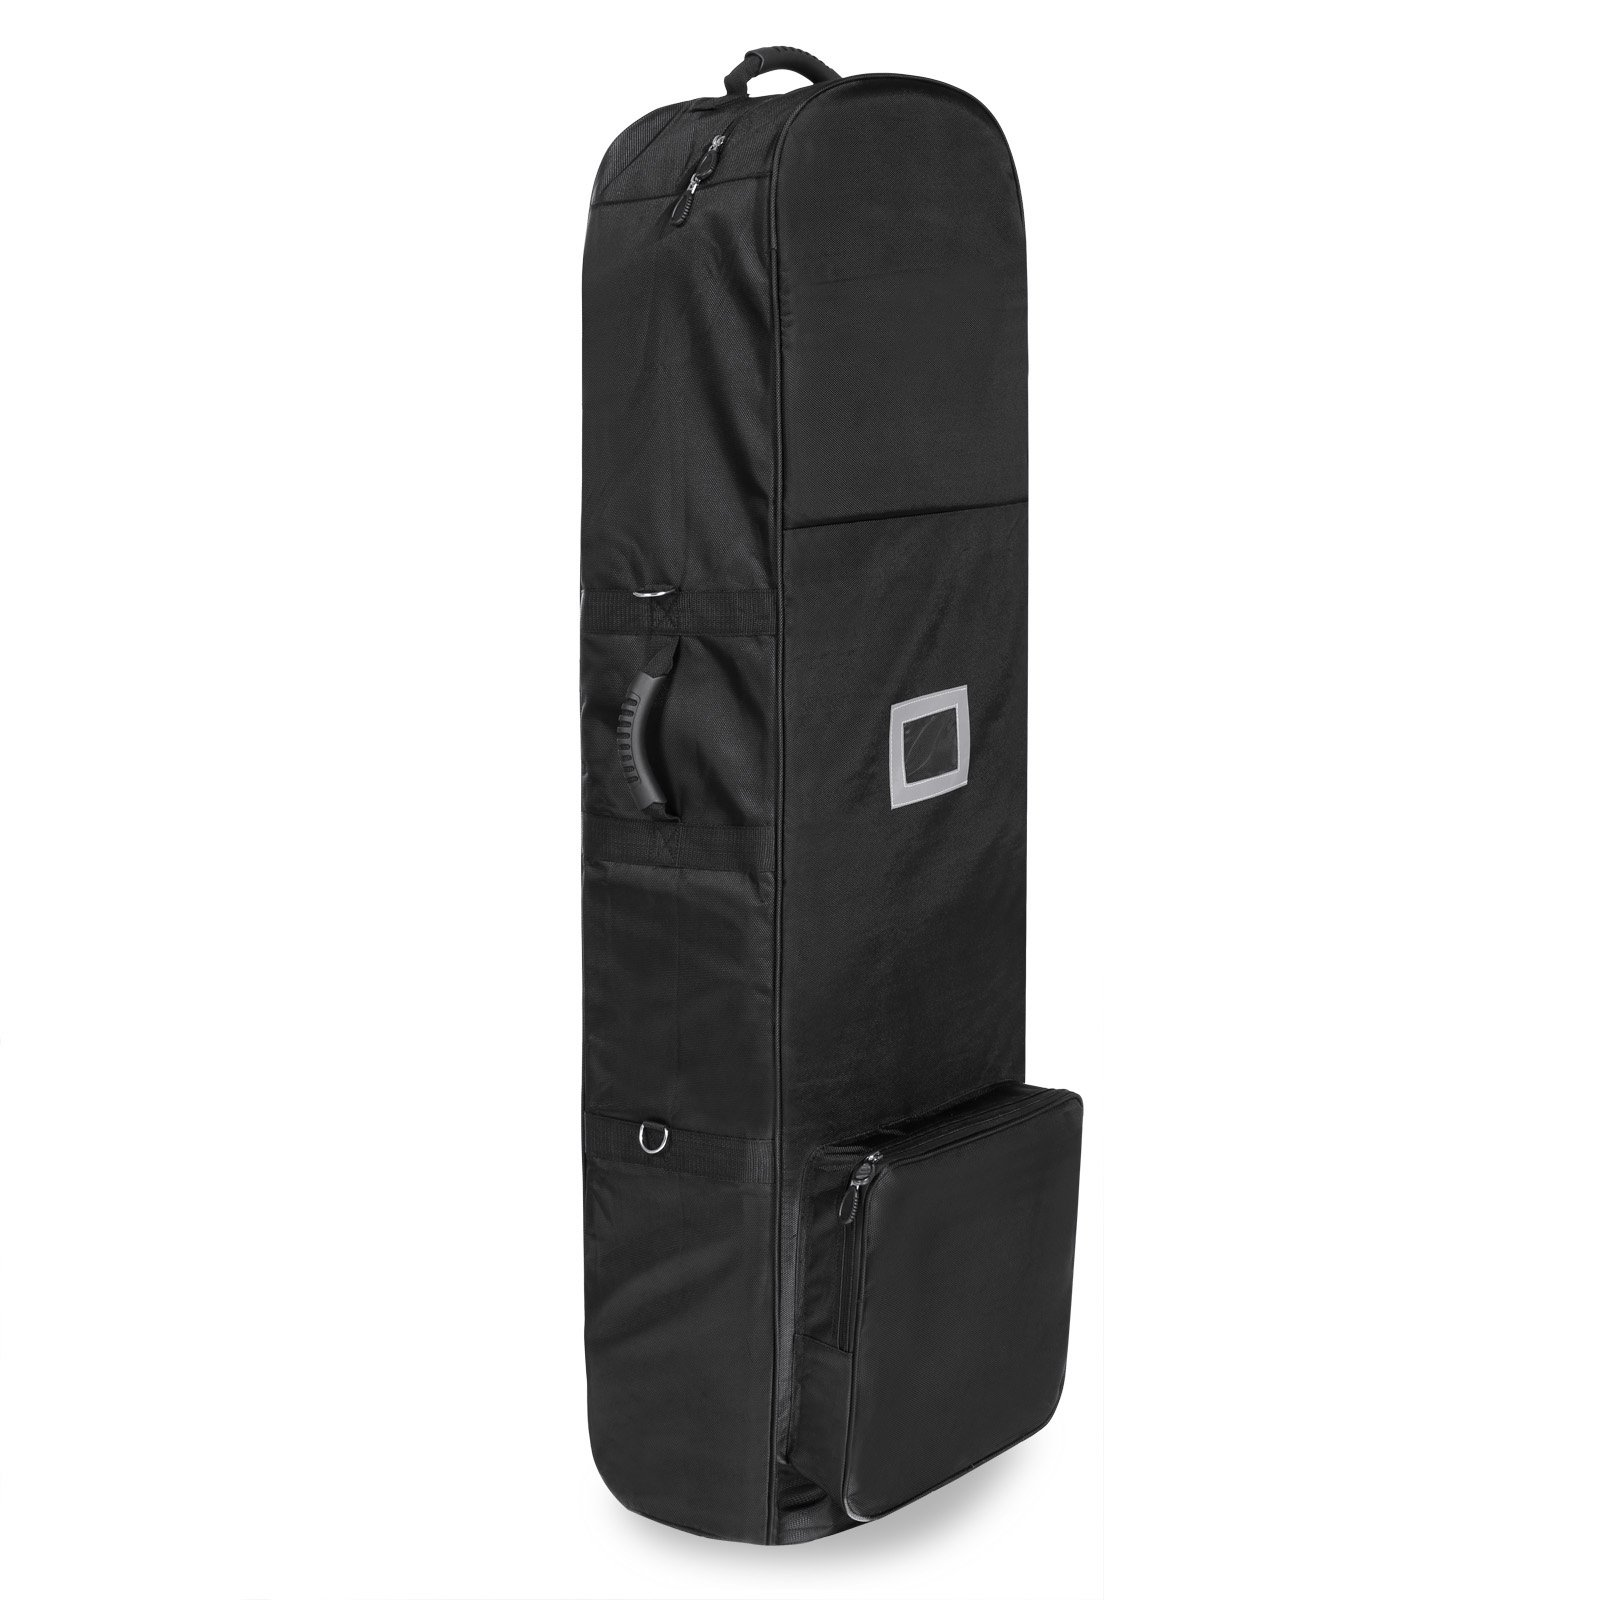 Golf Travel Bag PEATAO Padded Oxford Golf Club Travel Cover ,Black with Two Wheel (US STOCK)